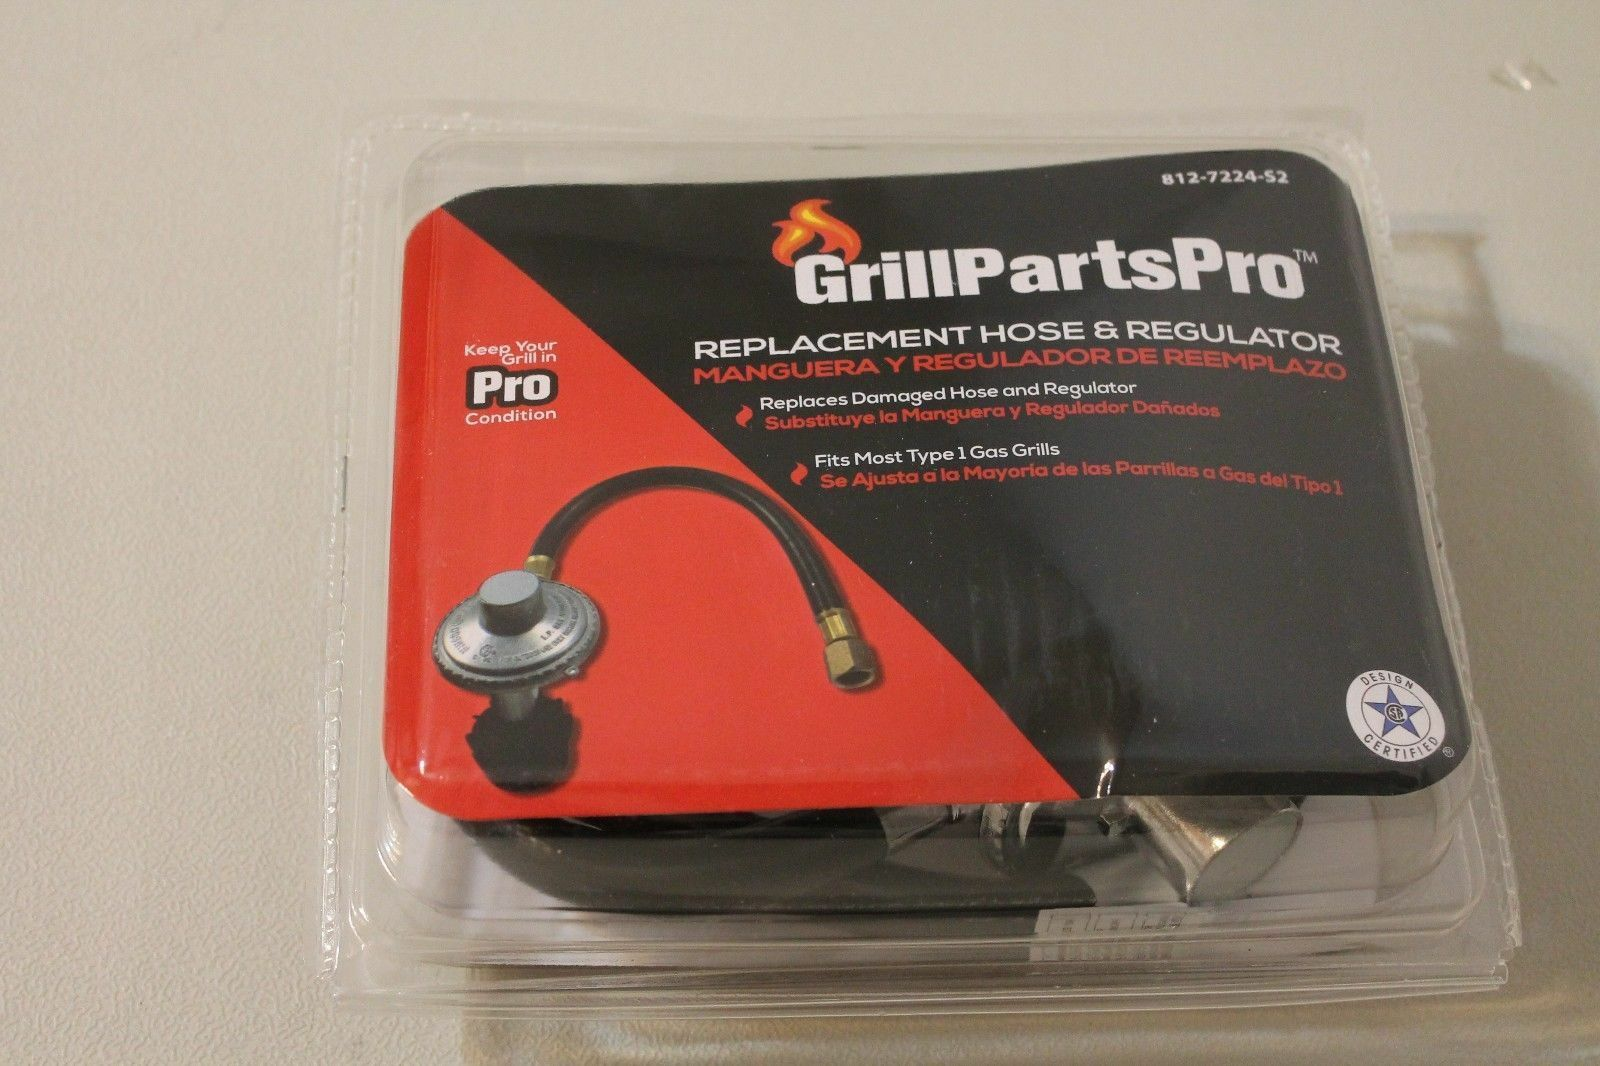 Brinkmann  Grill Parts Pro Replacement Hose & Regulator